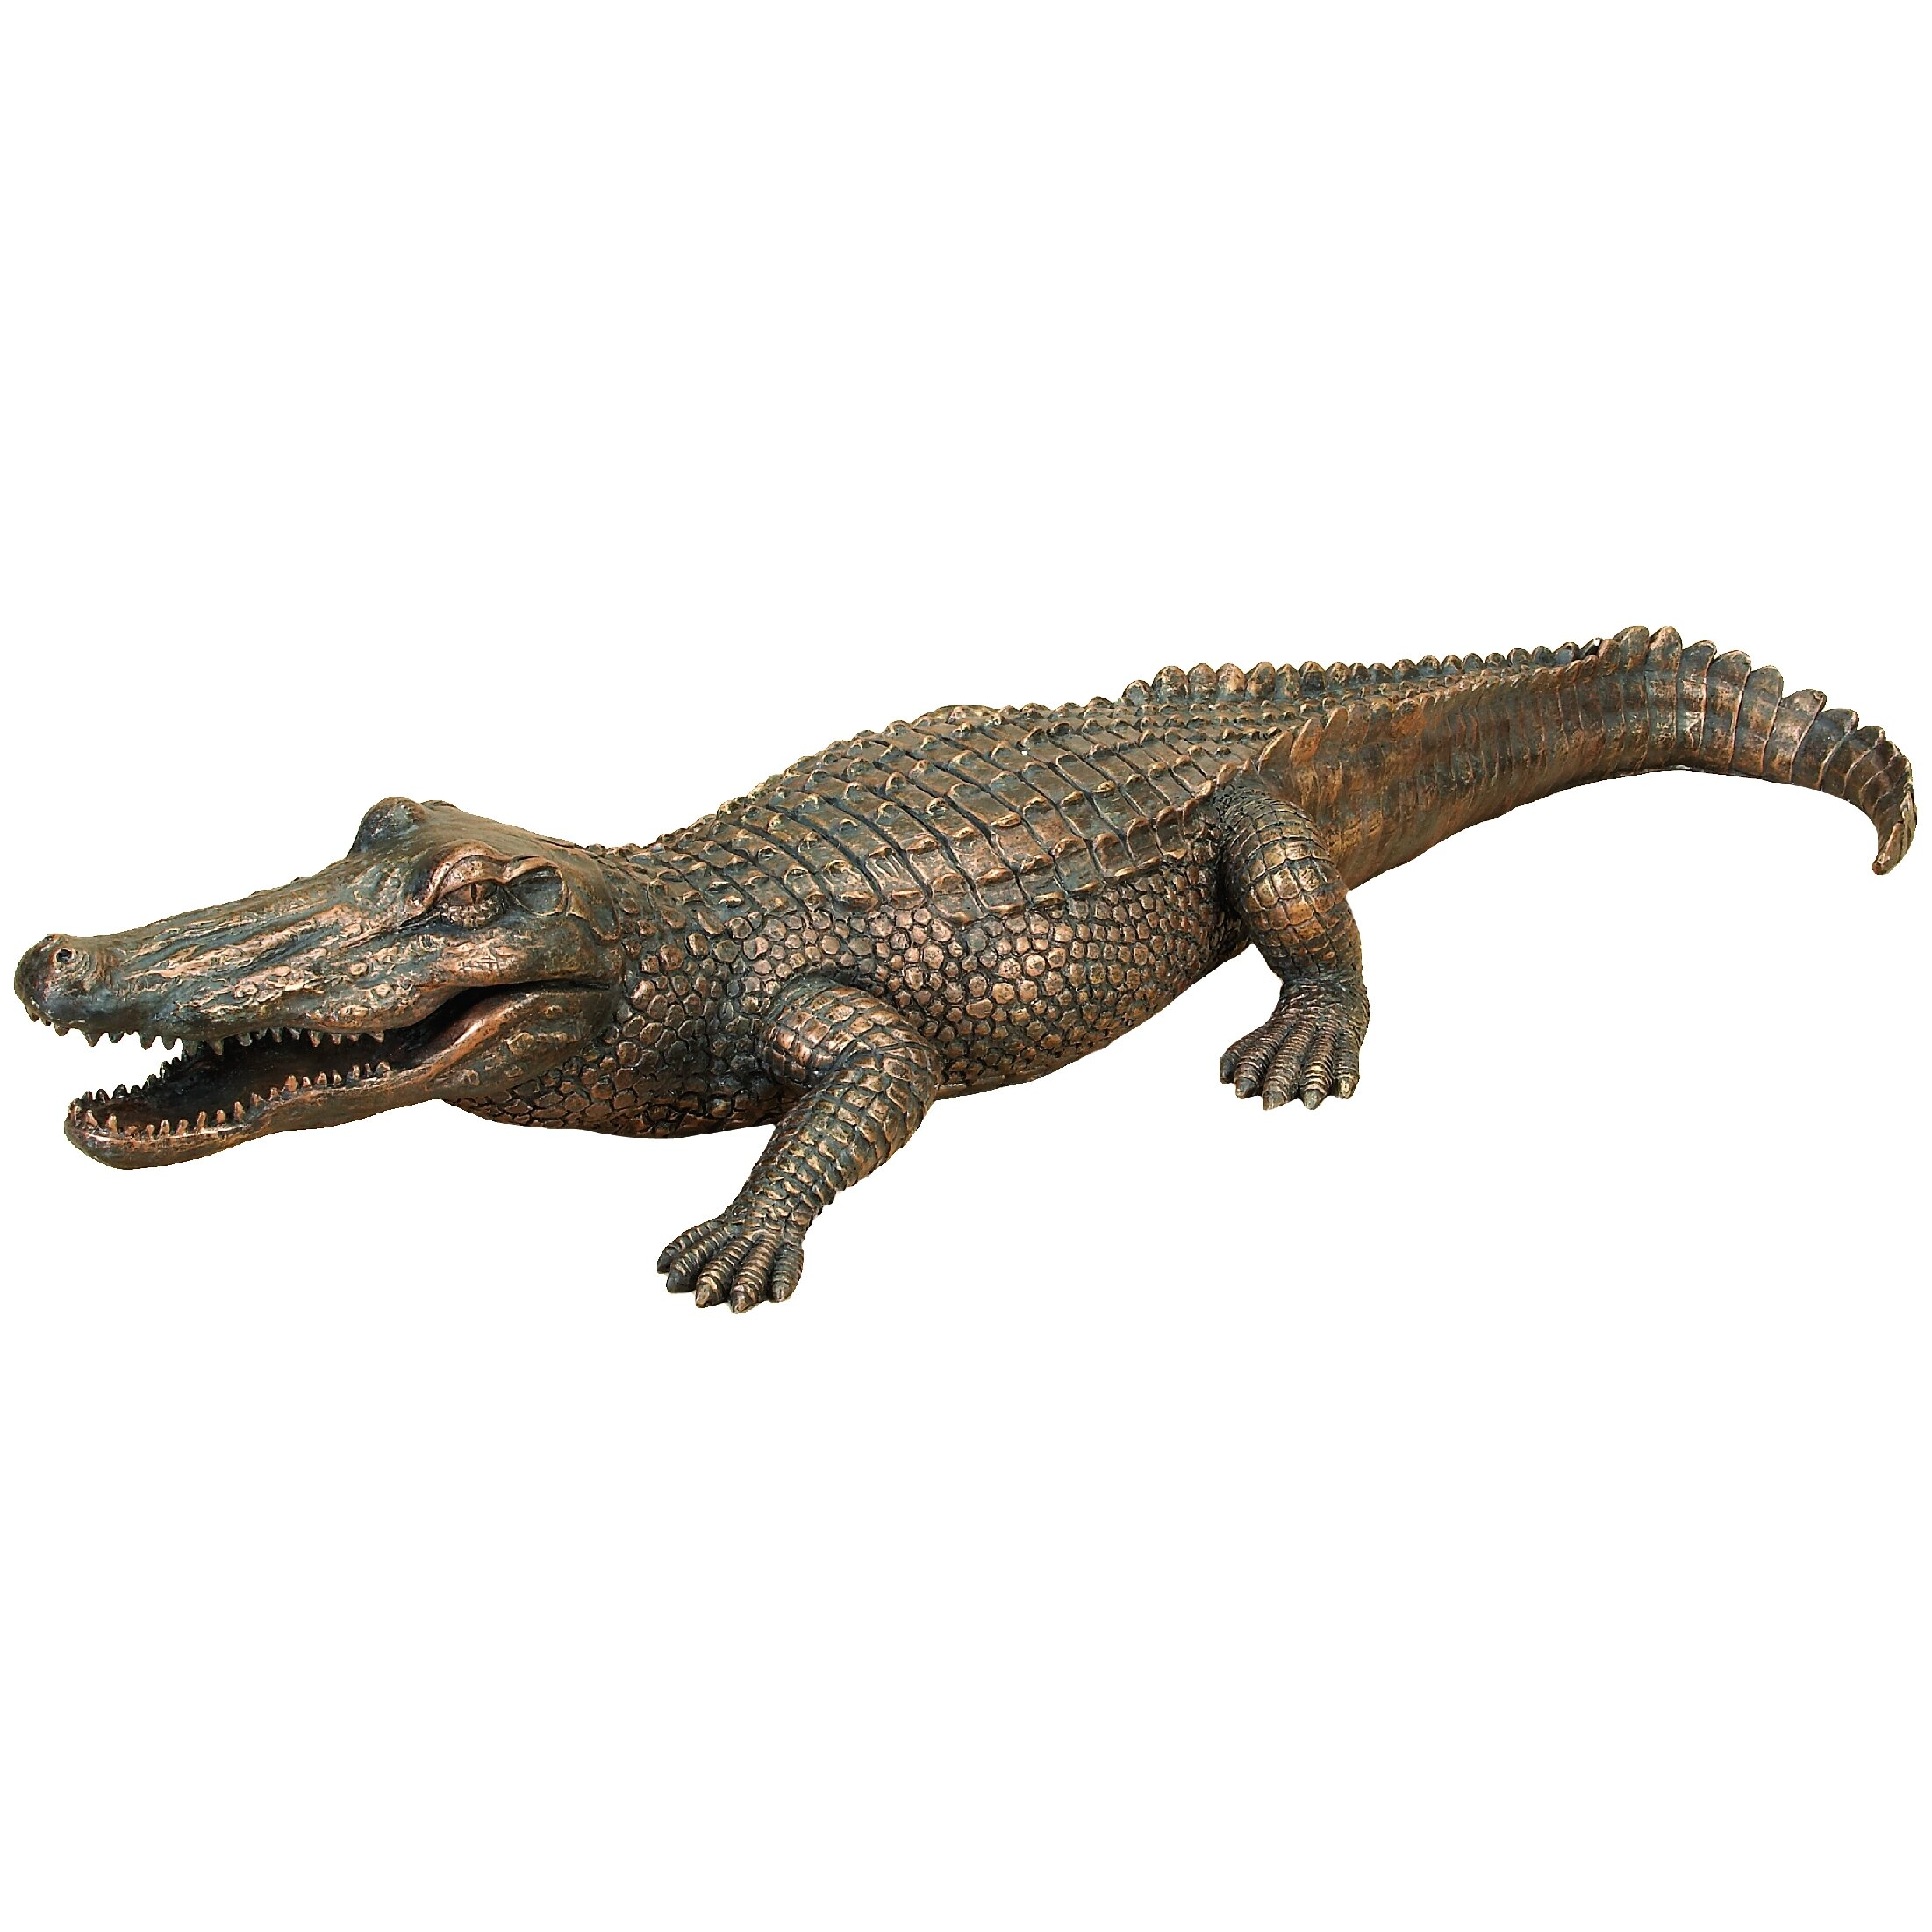 woodland imports alligator garden statue reviews wayfair. Black Bedroom Furniture Sets. Home Design Ideas